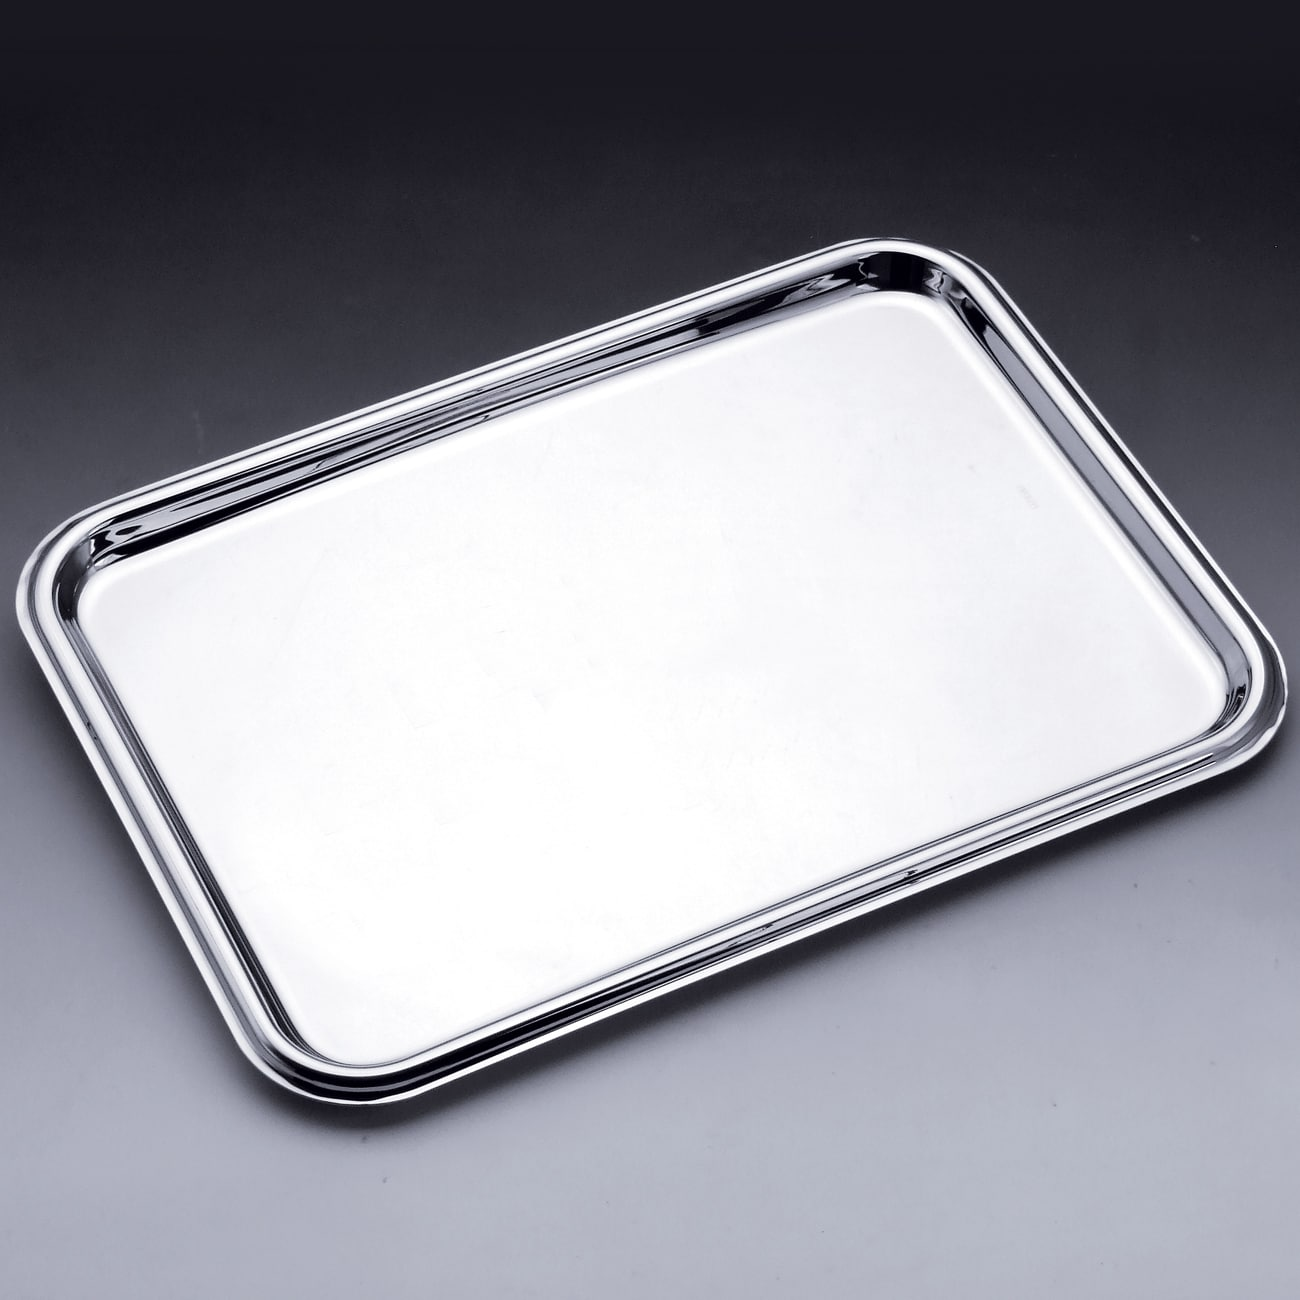 Wolff Silver Stainless Steel Large Serving Tray